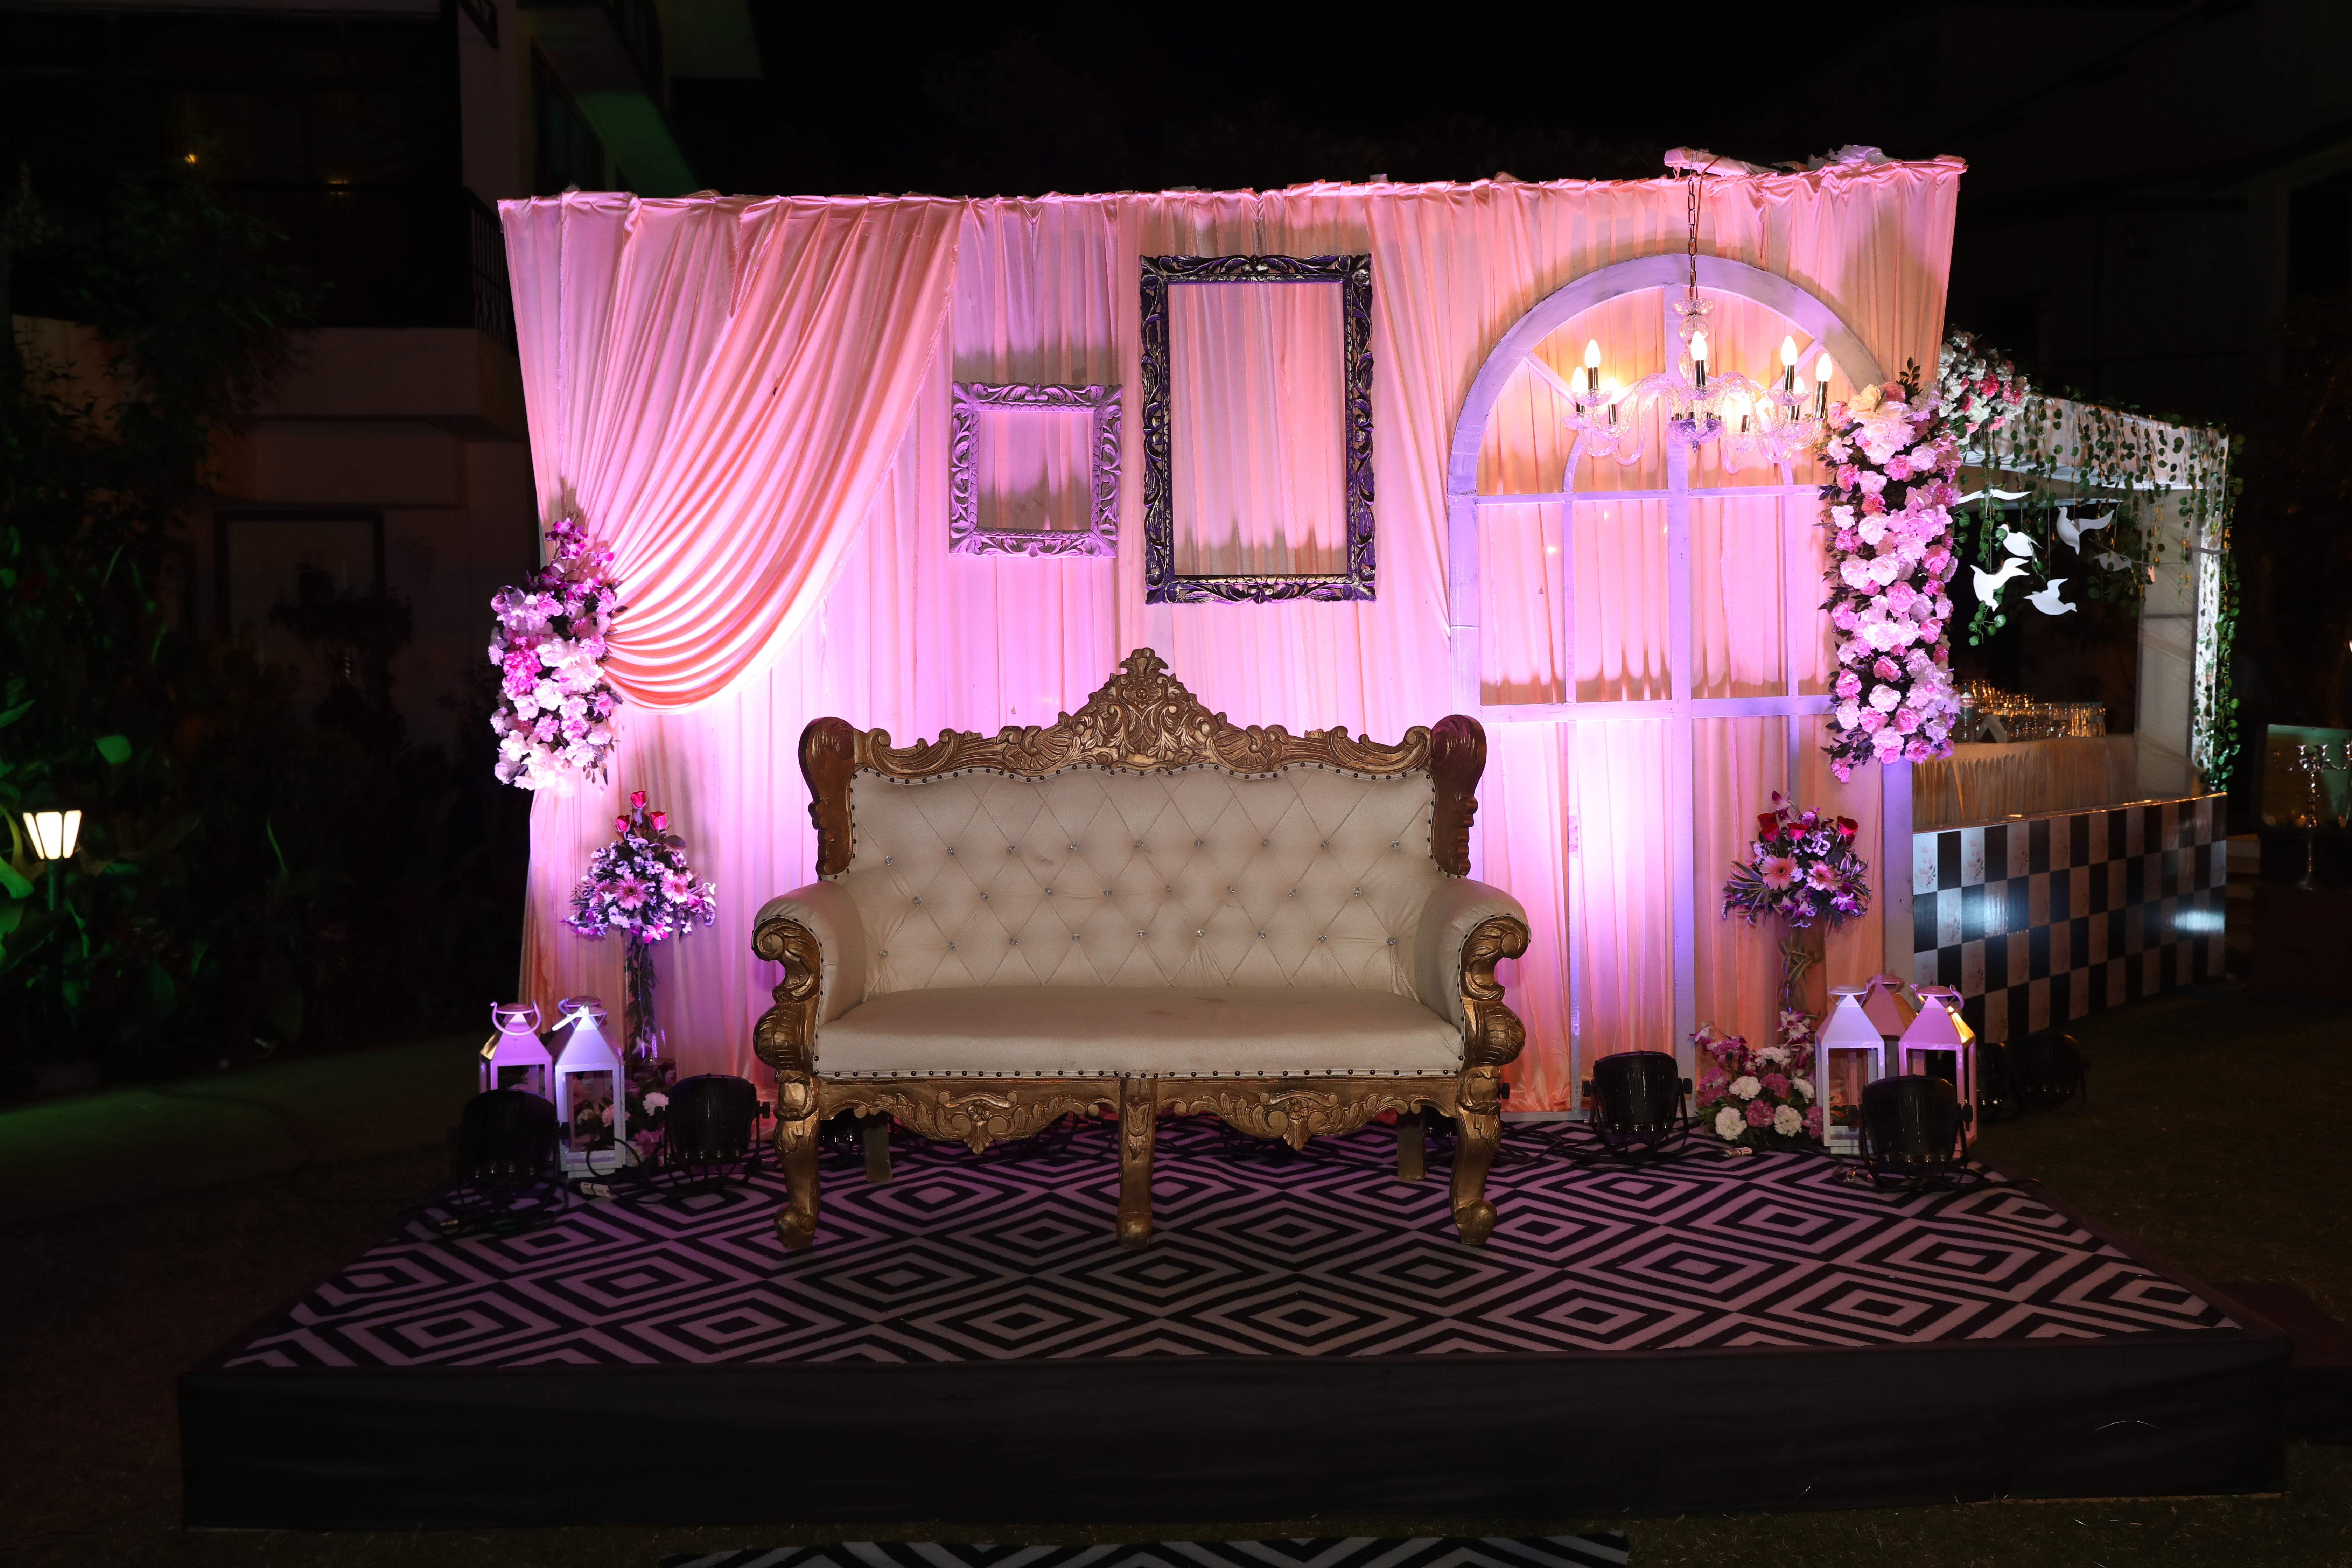 Couple Lounge | Urban Events | Wedding planners in pune, wedding organisers in pune, wedding stage decor, sangeet decor in pune, couple lounge decor, wedding planners in nashik, wedding planners sin goa, event planners in pune,     - GL101677